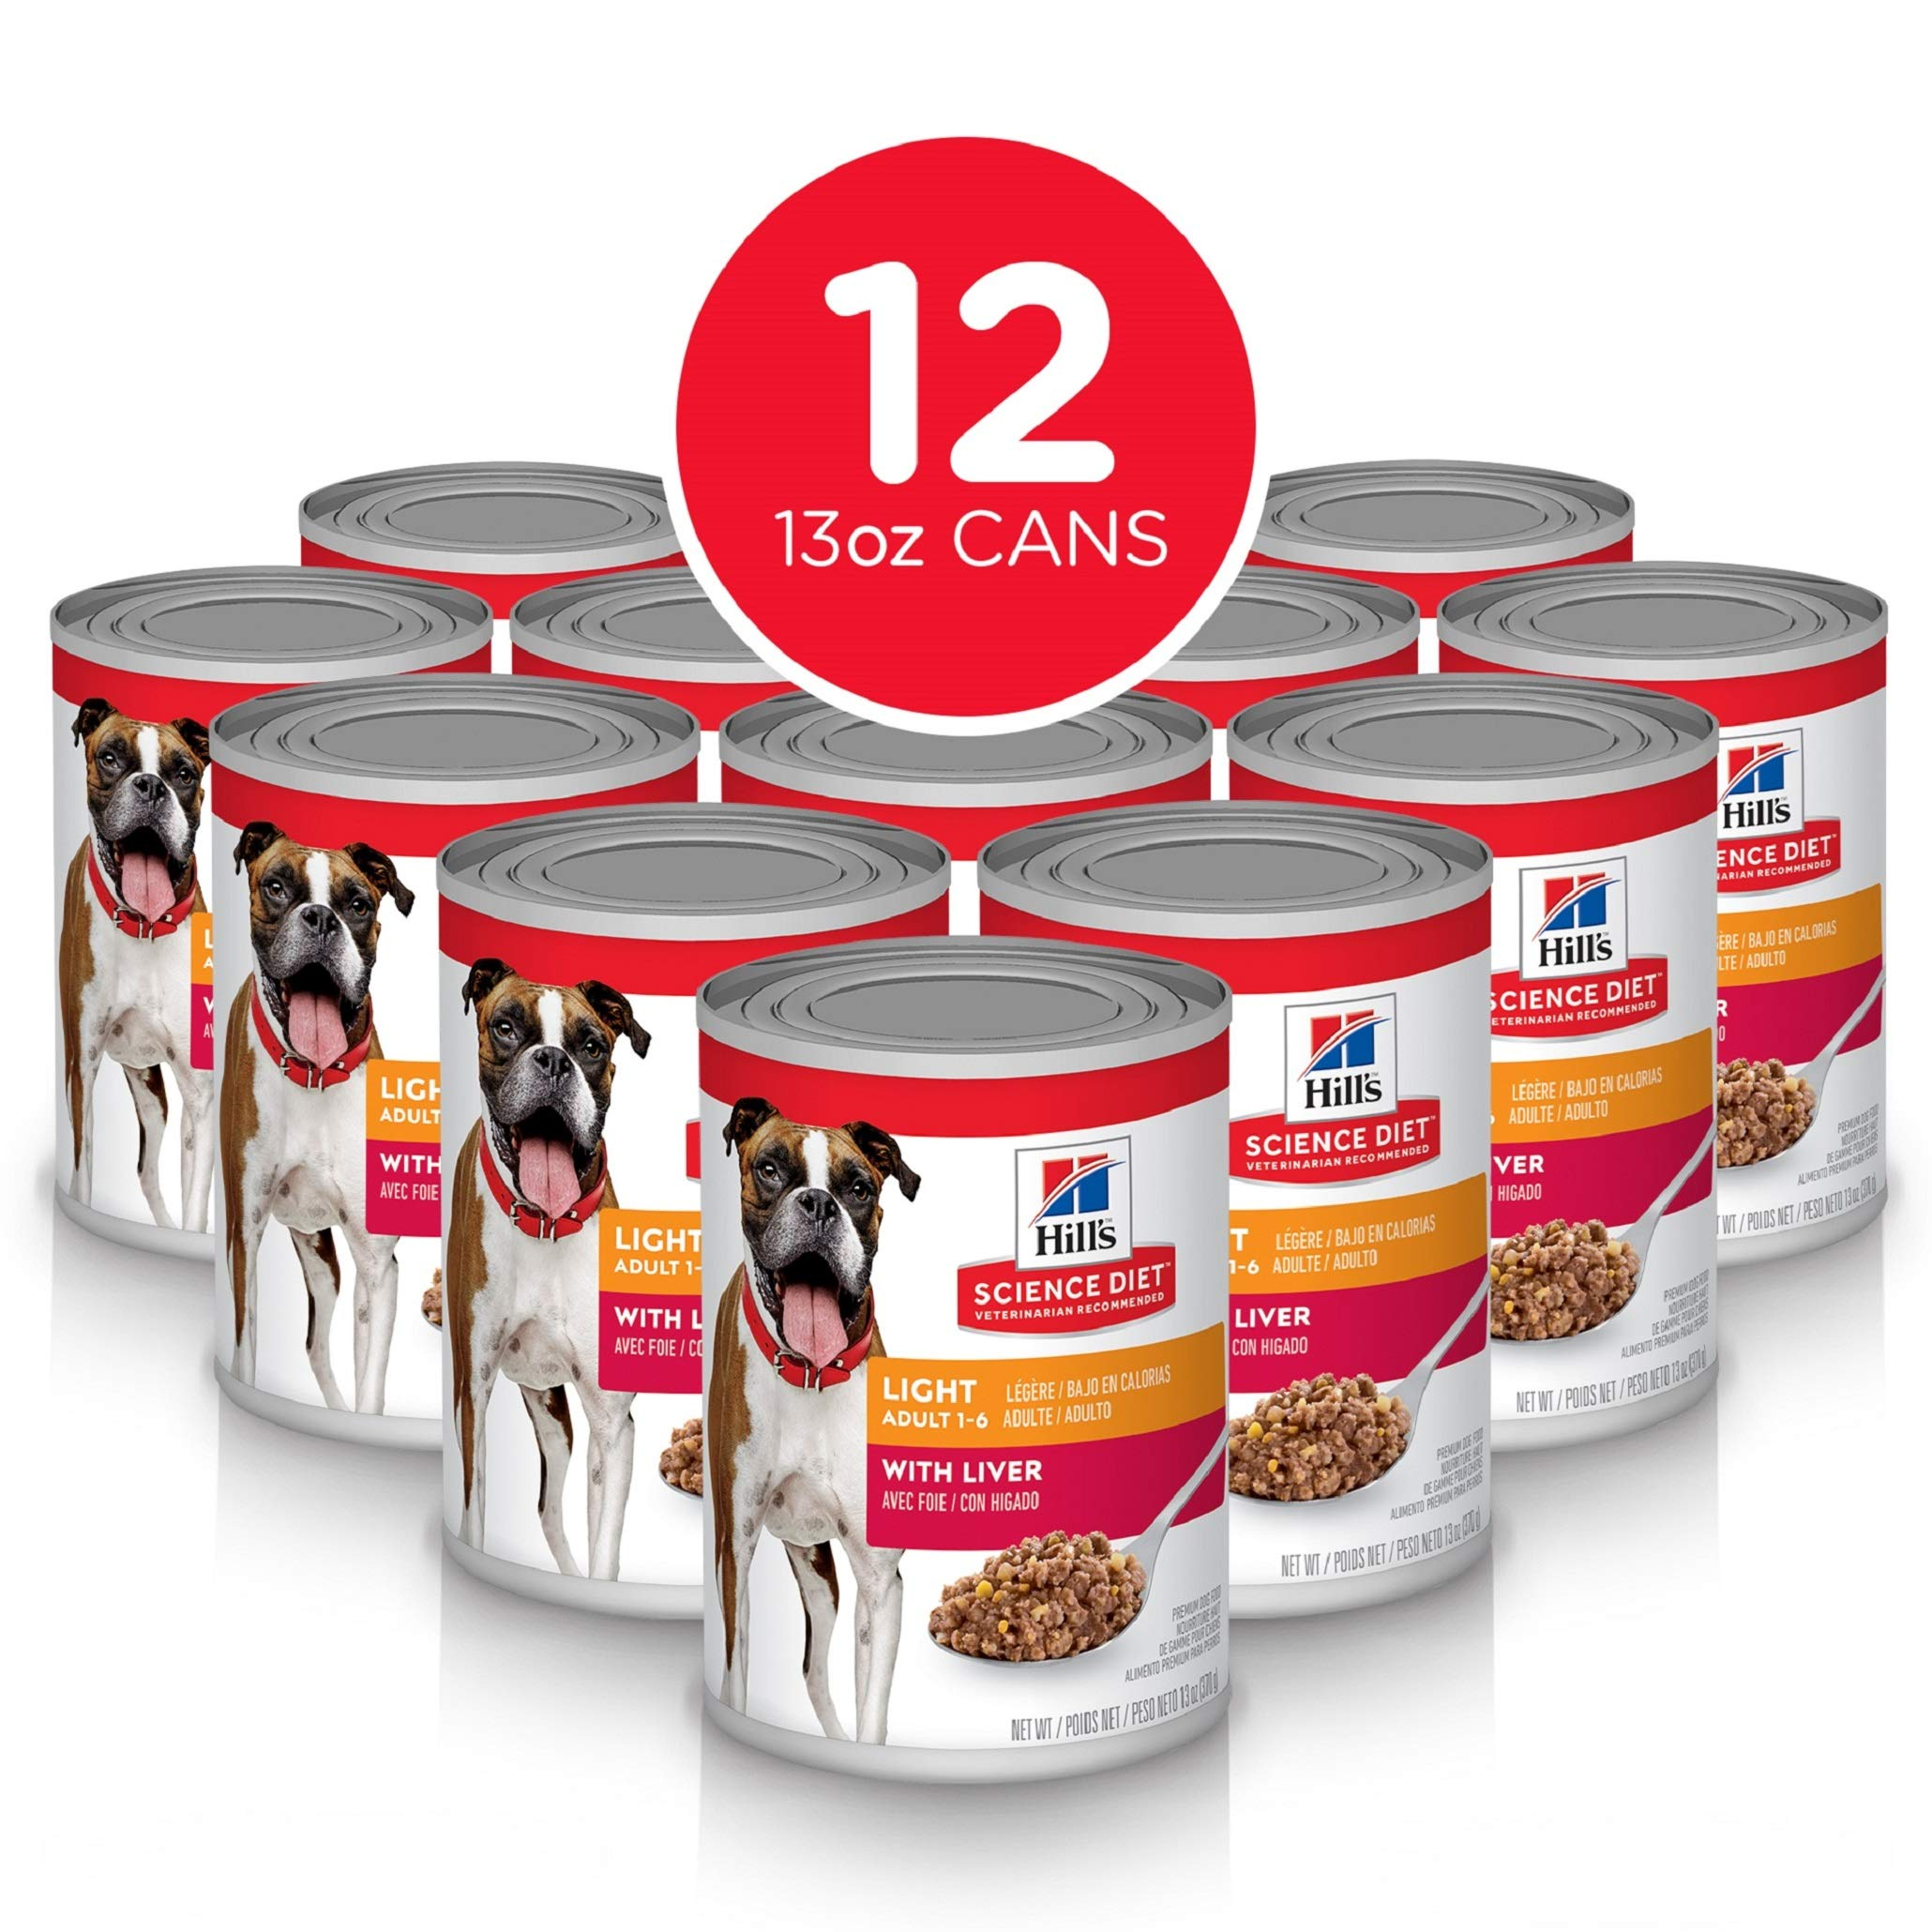 Hill's Science Diet Wet Dog Food, Adult, Light for Weight Management, Liver Recipe, 13 oz Cans, 12-pack by Hill's Science Diet